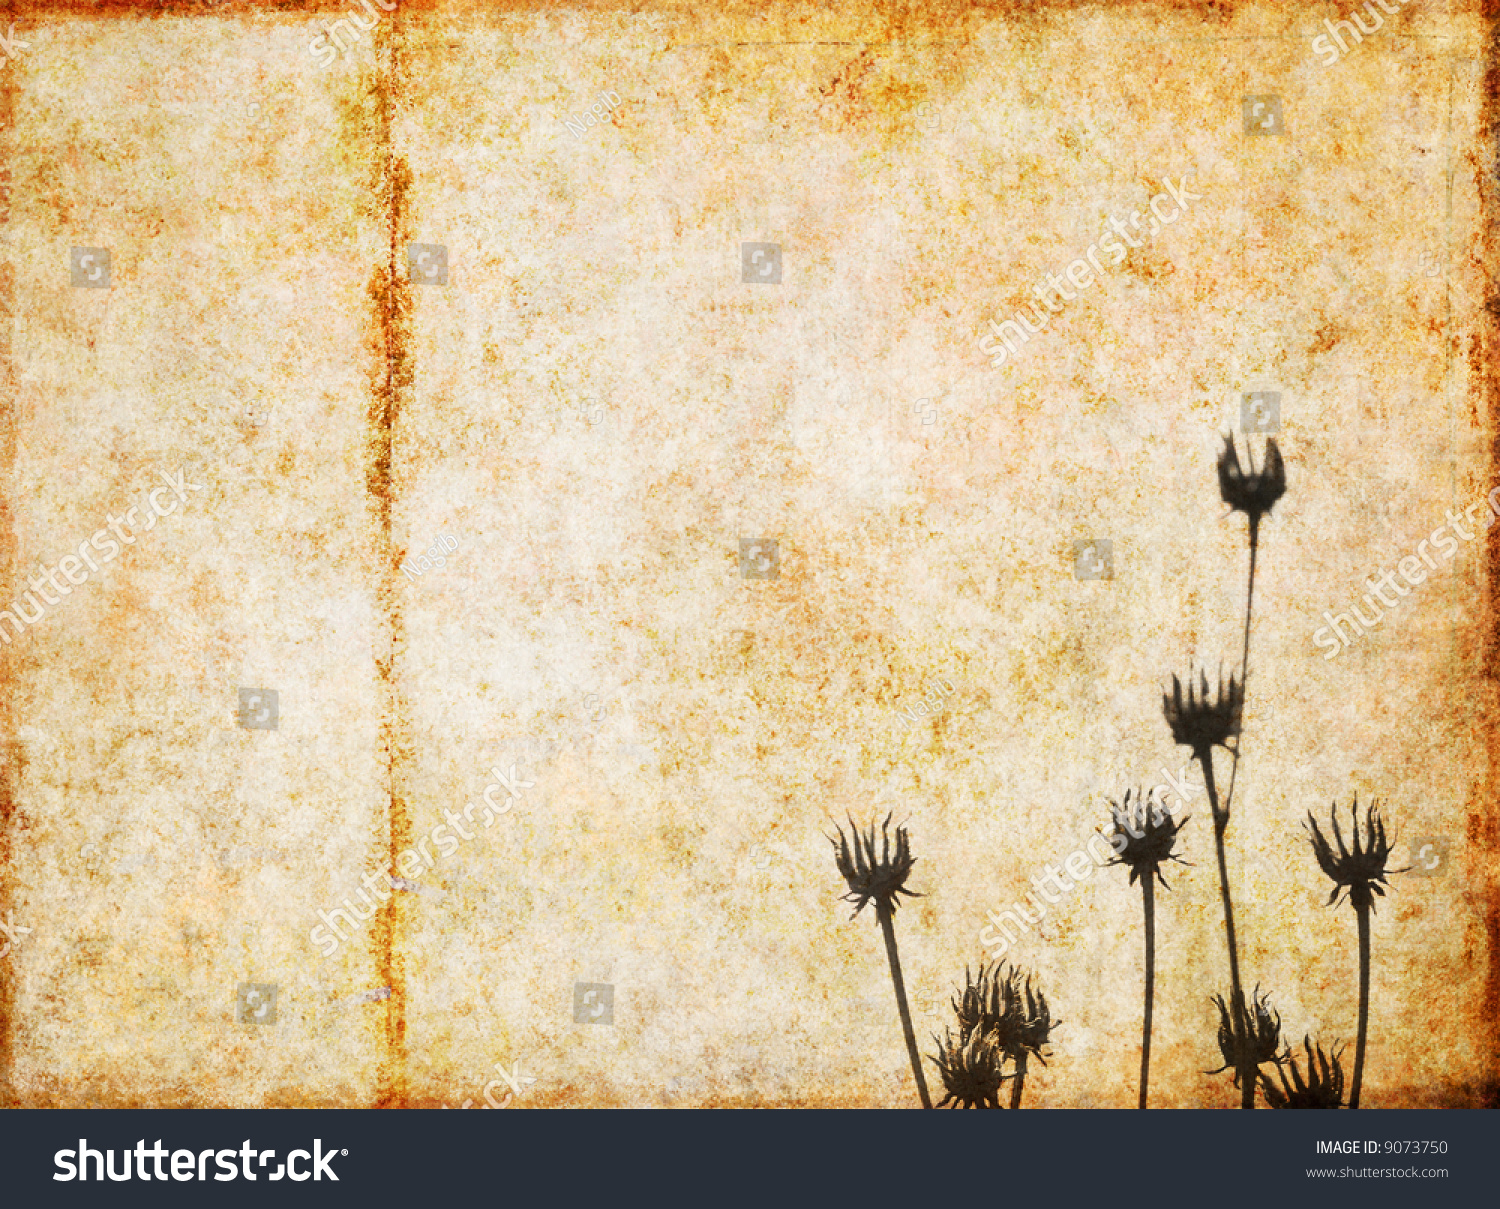 Pretty Brown Background Image With Interesting Texture ... - photo#41